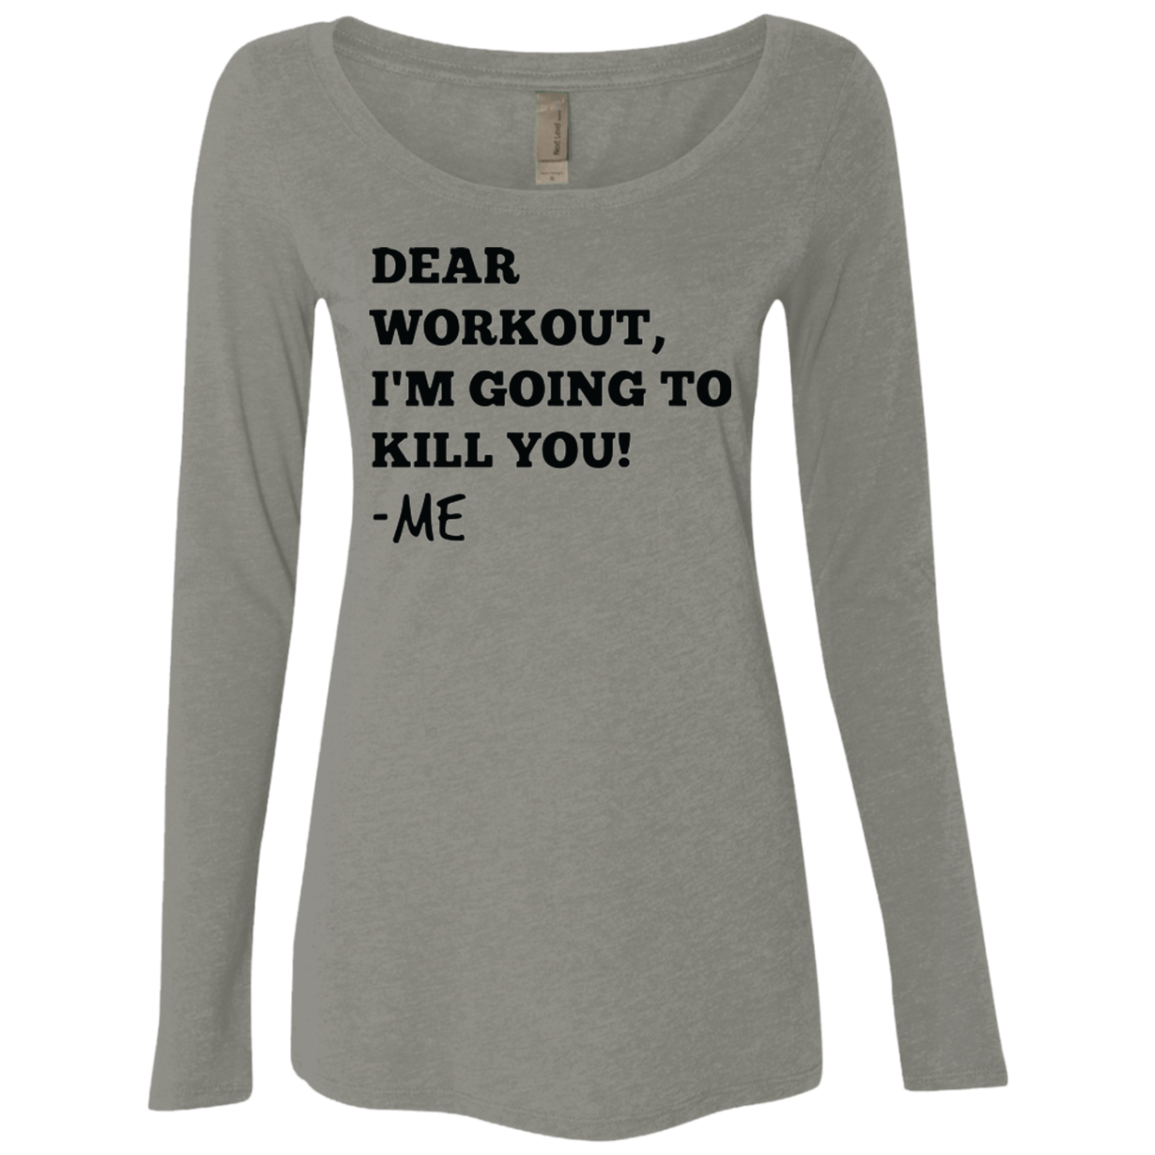 Dear Workout I'm Going to Kill You Women's Long Sleeve Tee - Trendy Tees